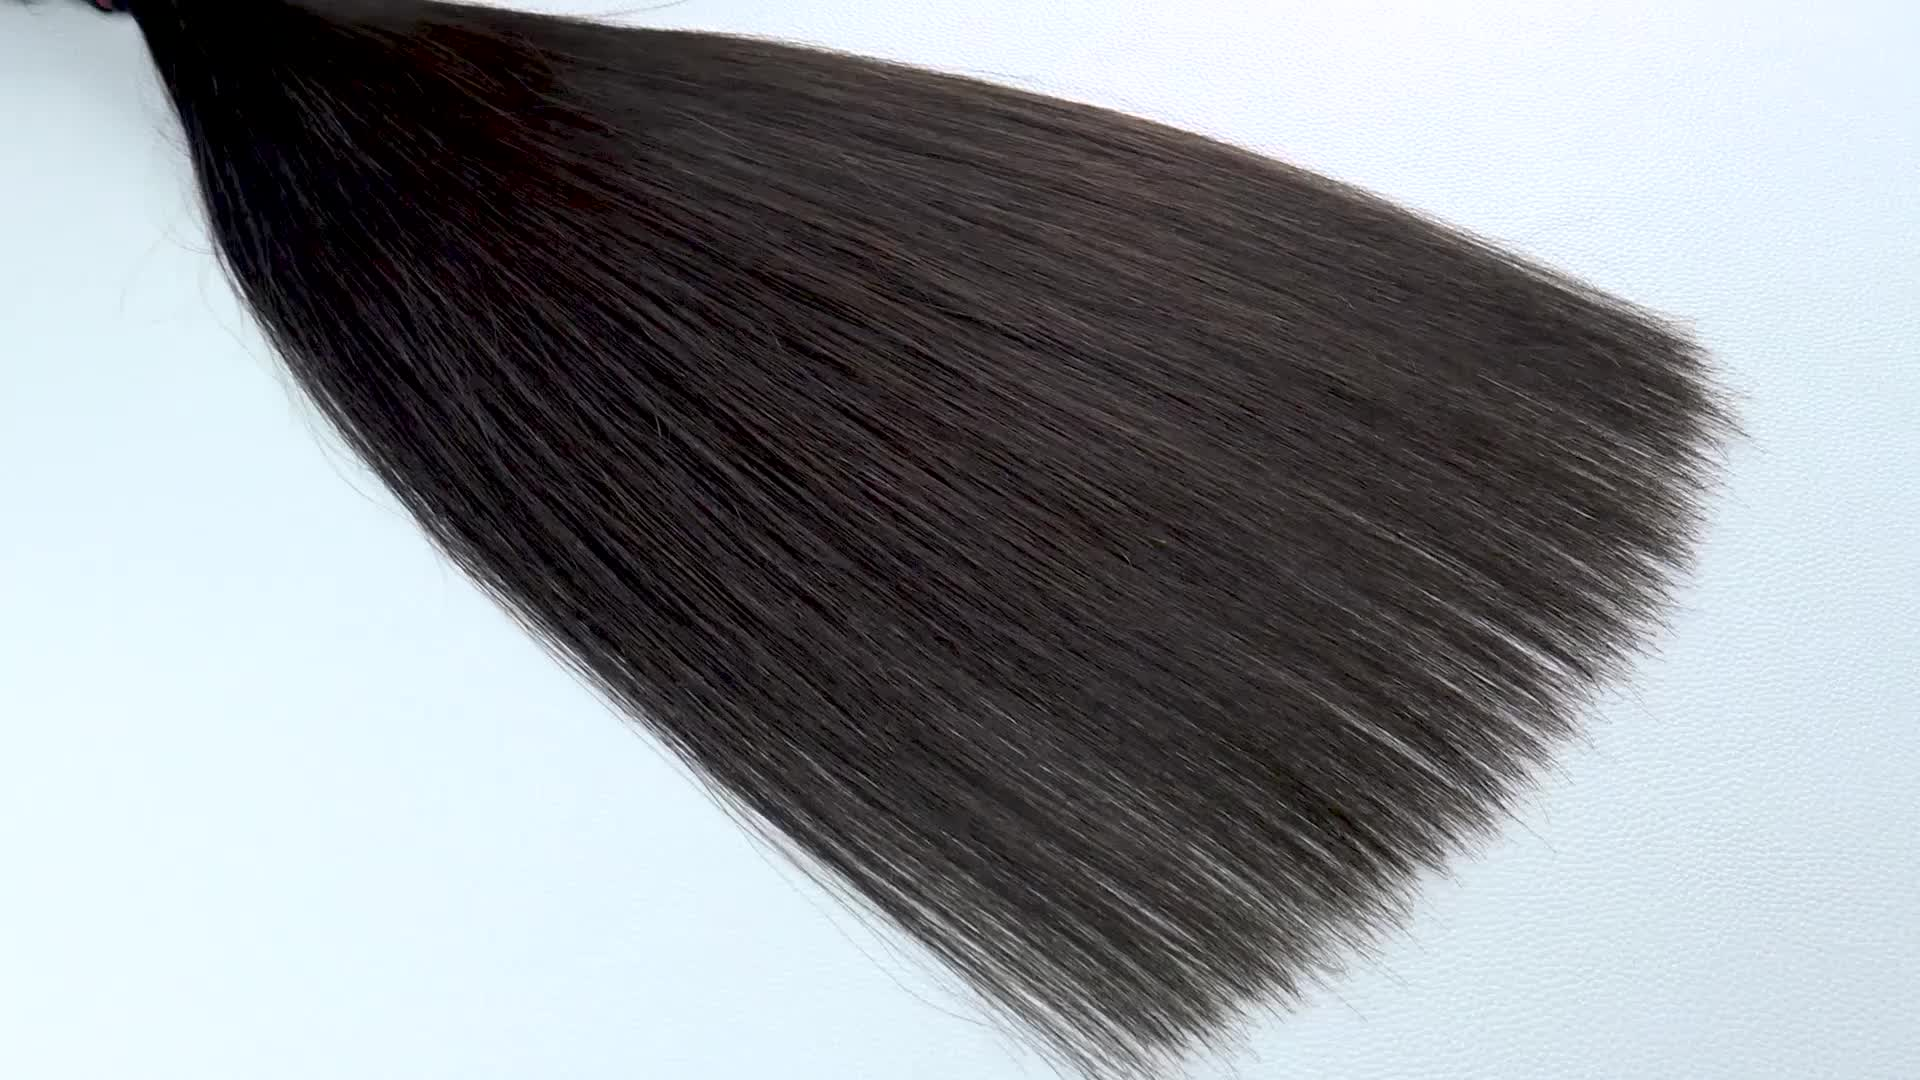 Beauty stage cheap grade 9a virgin hair,wholesale braids 100% natural indian human hair price list